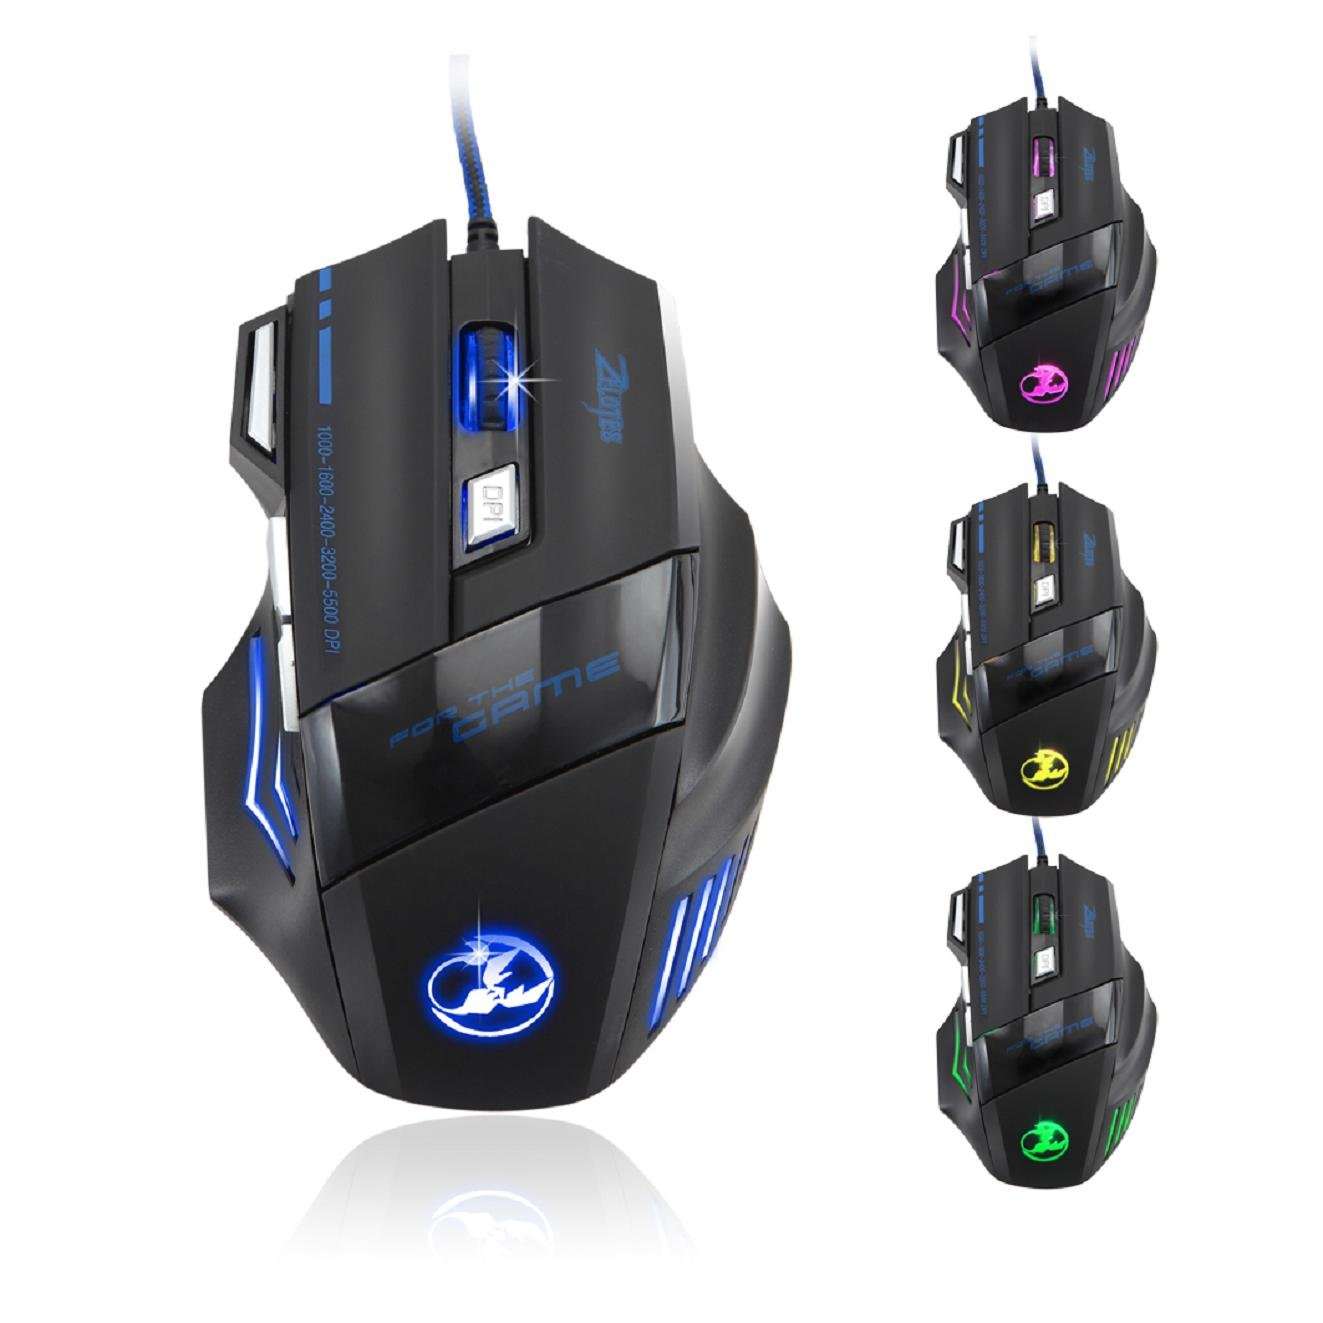 Mouse Gamer : Zelotes 5500 DPI 7 Boton LED Optico USB Con ca